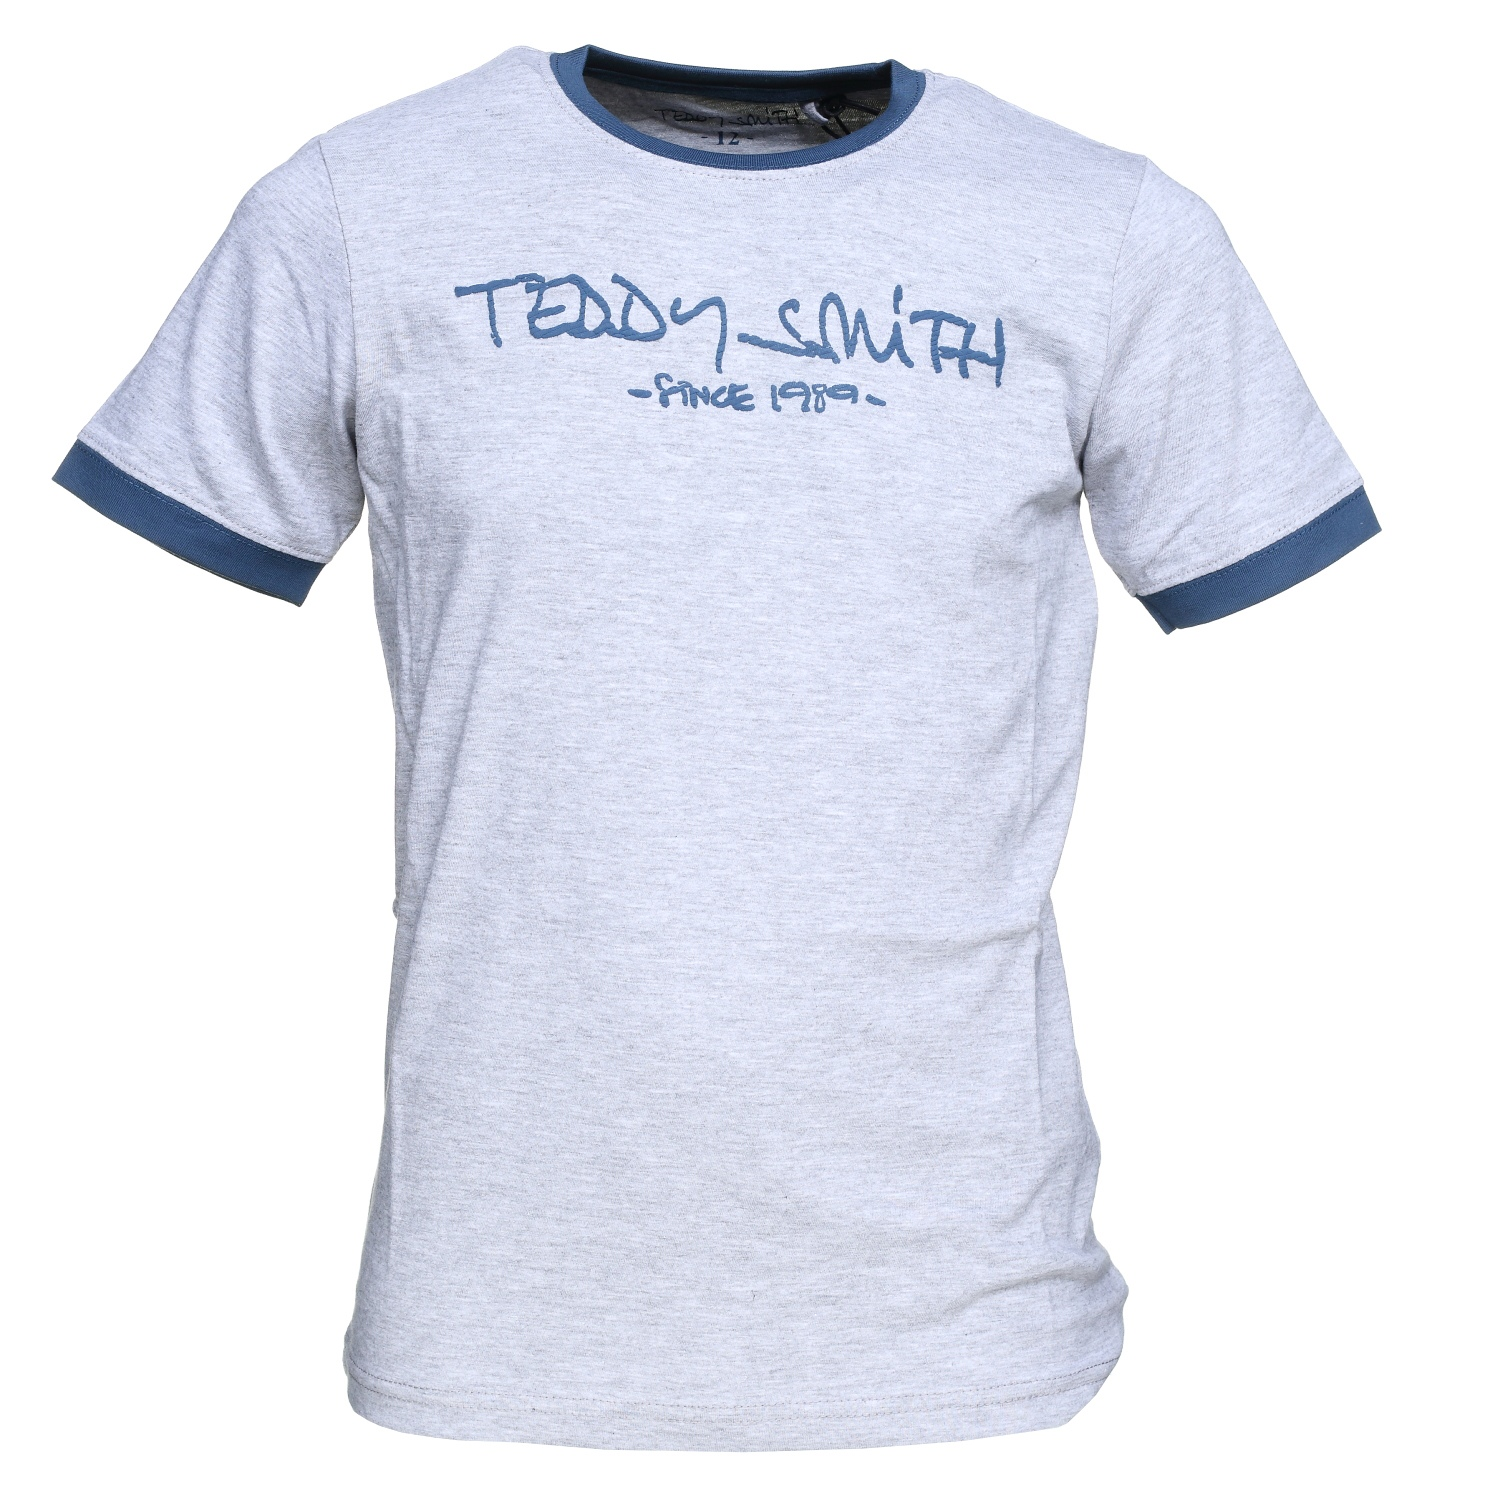 http://www.leadermode.com/139621/teddy-smith-ticlass3-mc-61002433d-181q-gris-indigo.jpg